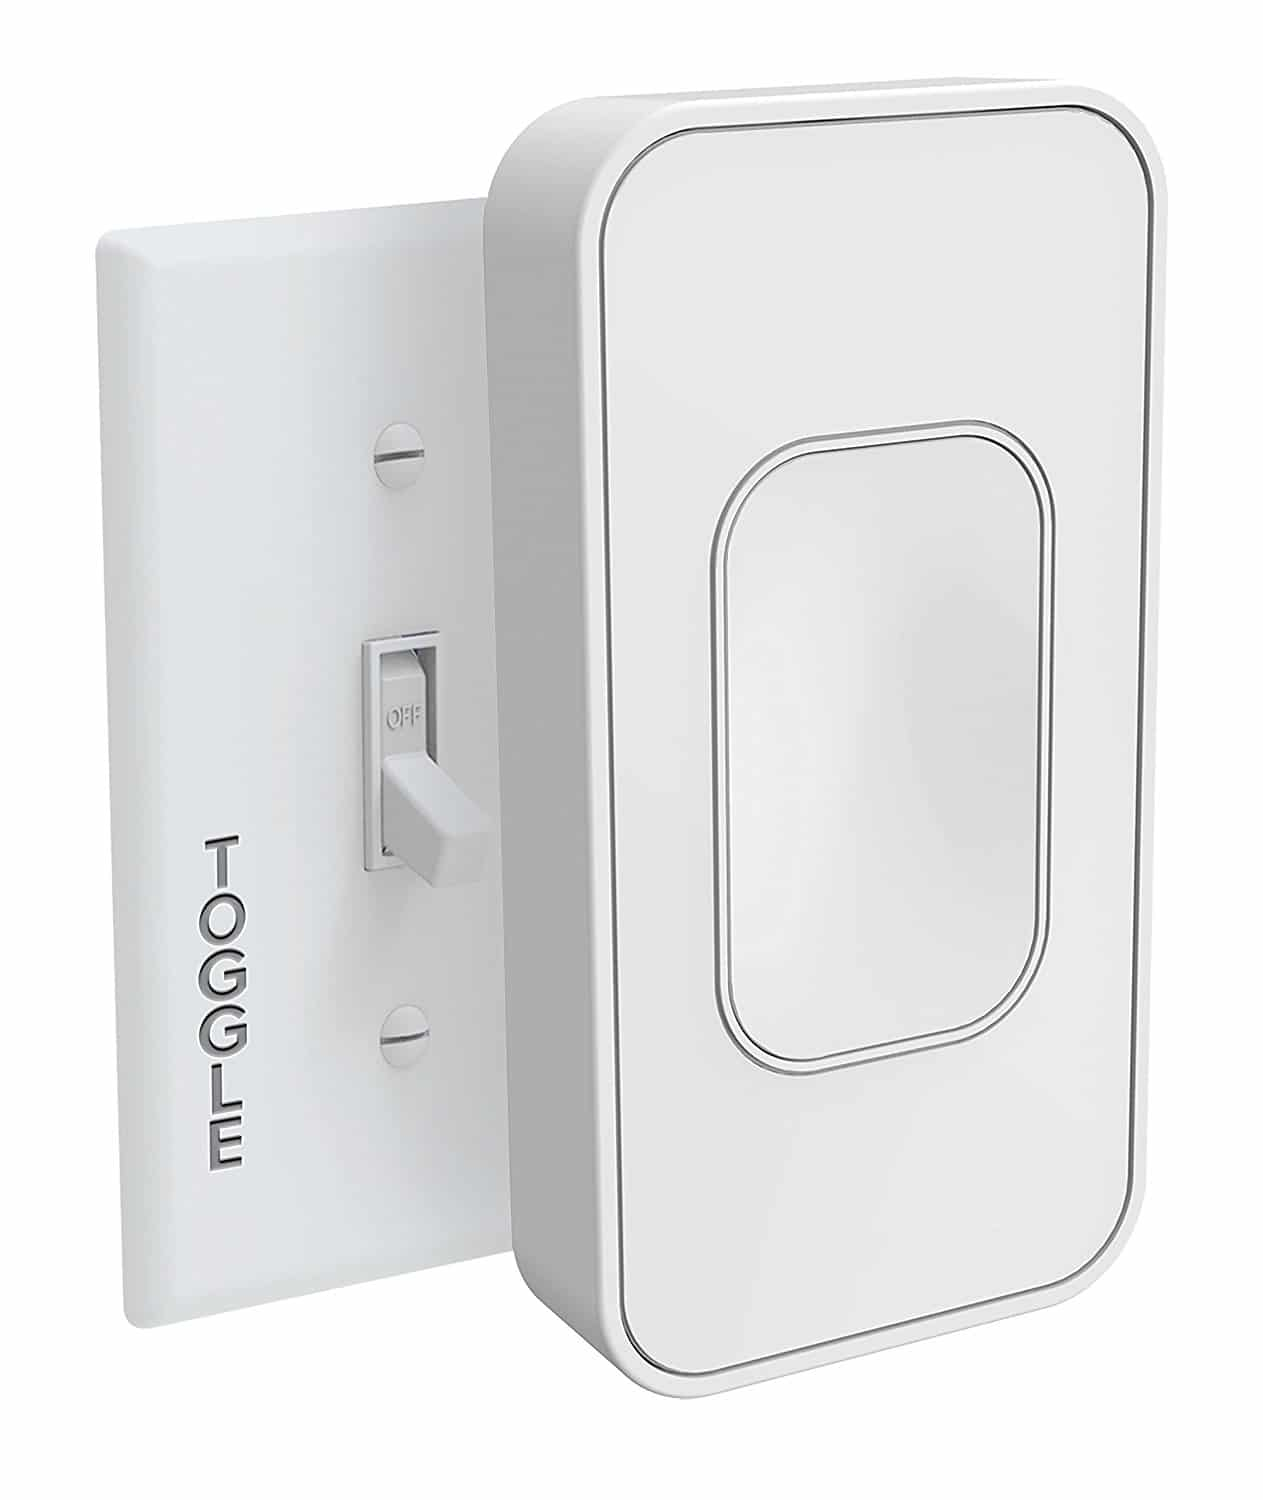 Smart WiFi Light Switches and Plugs - 2018